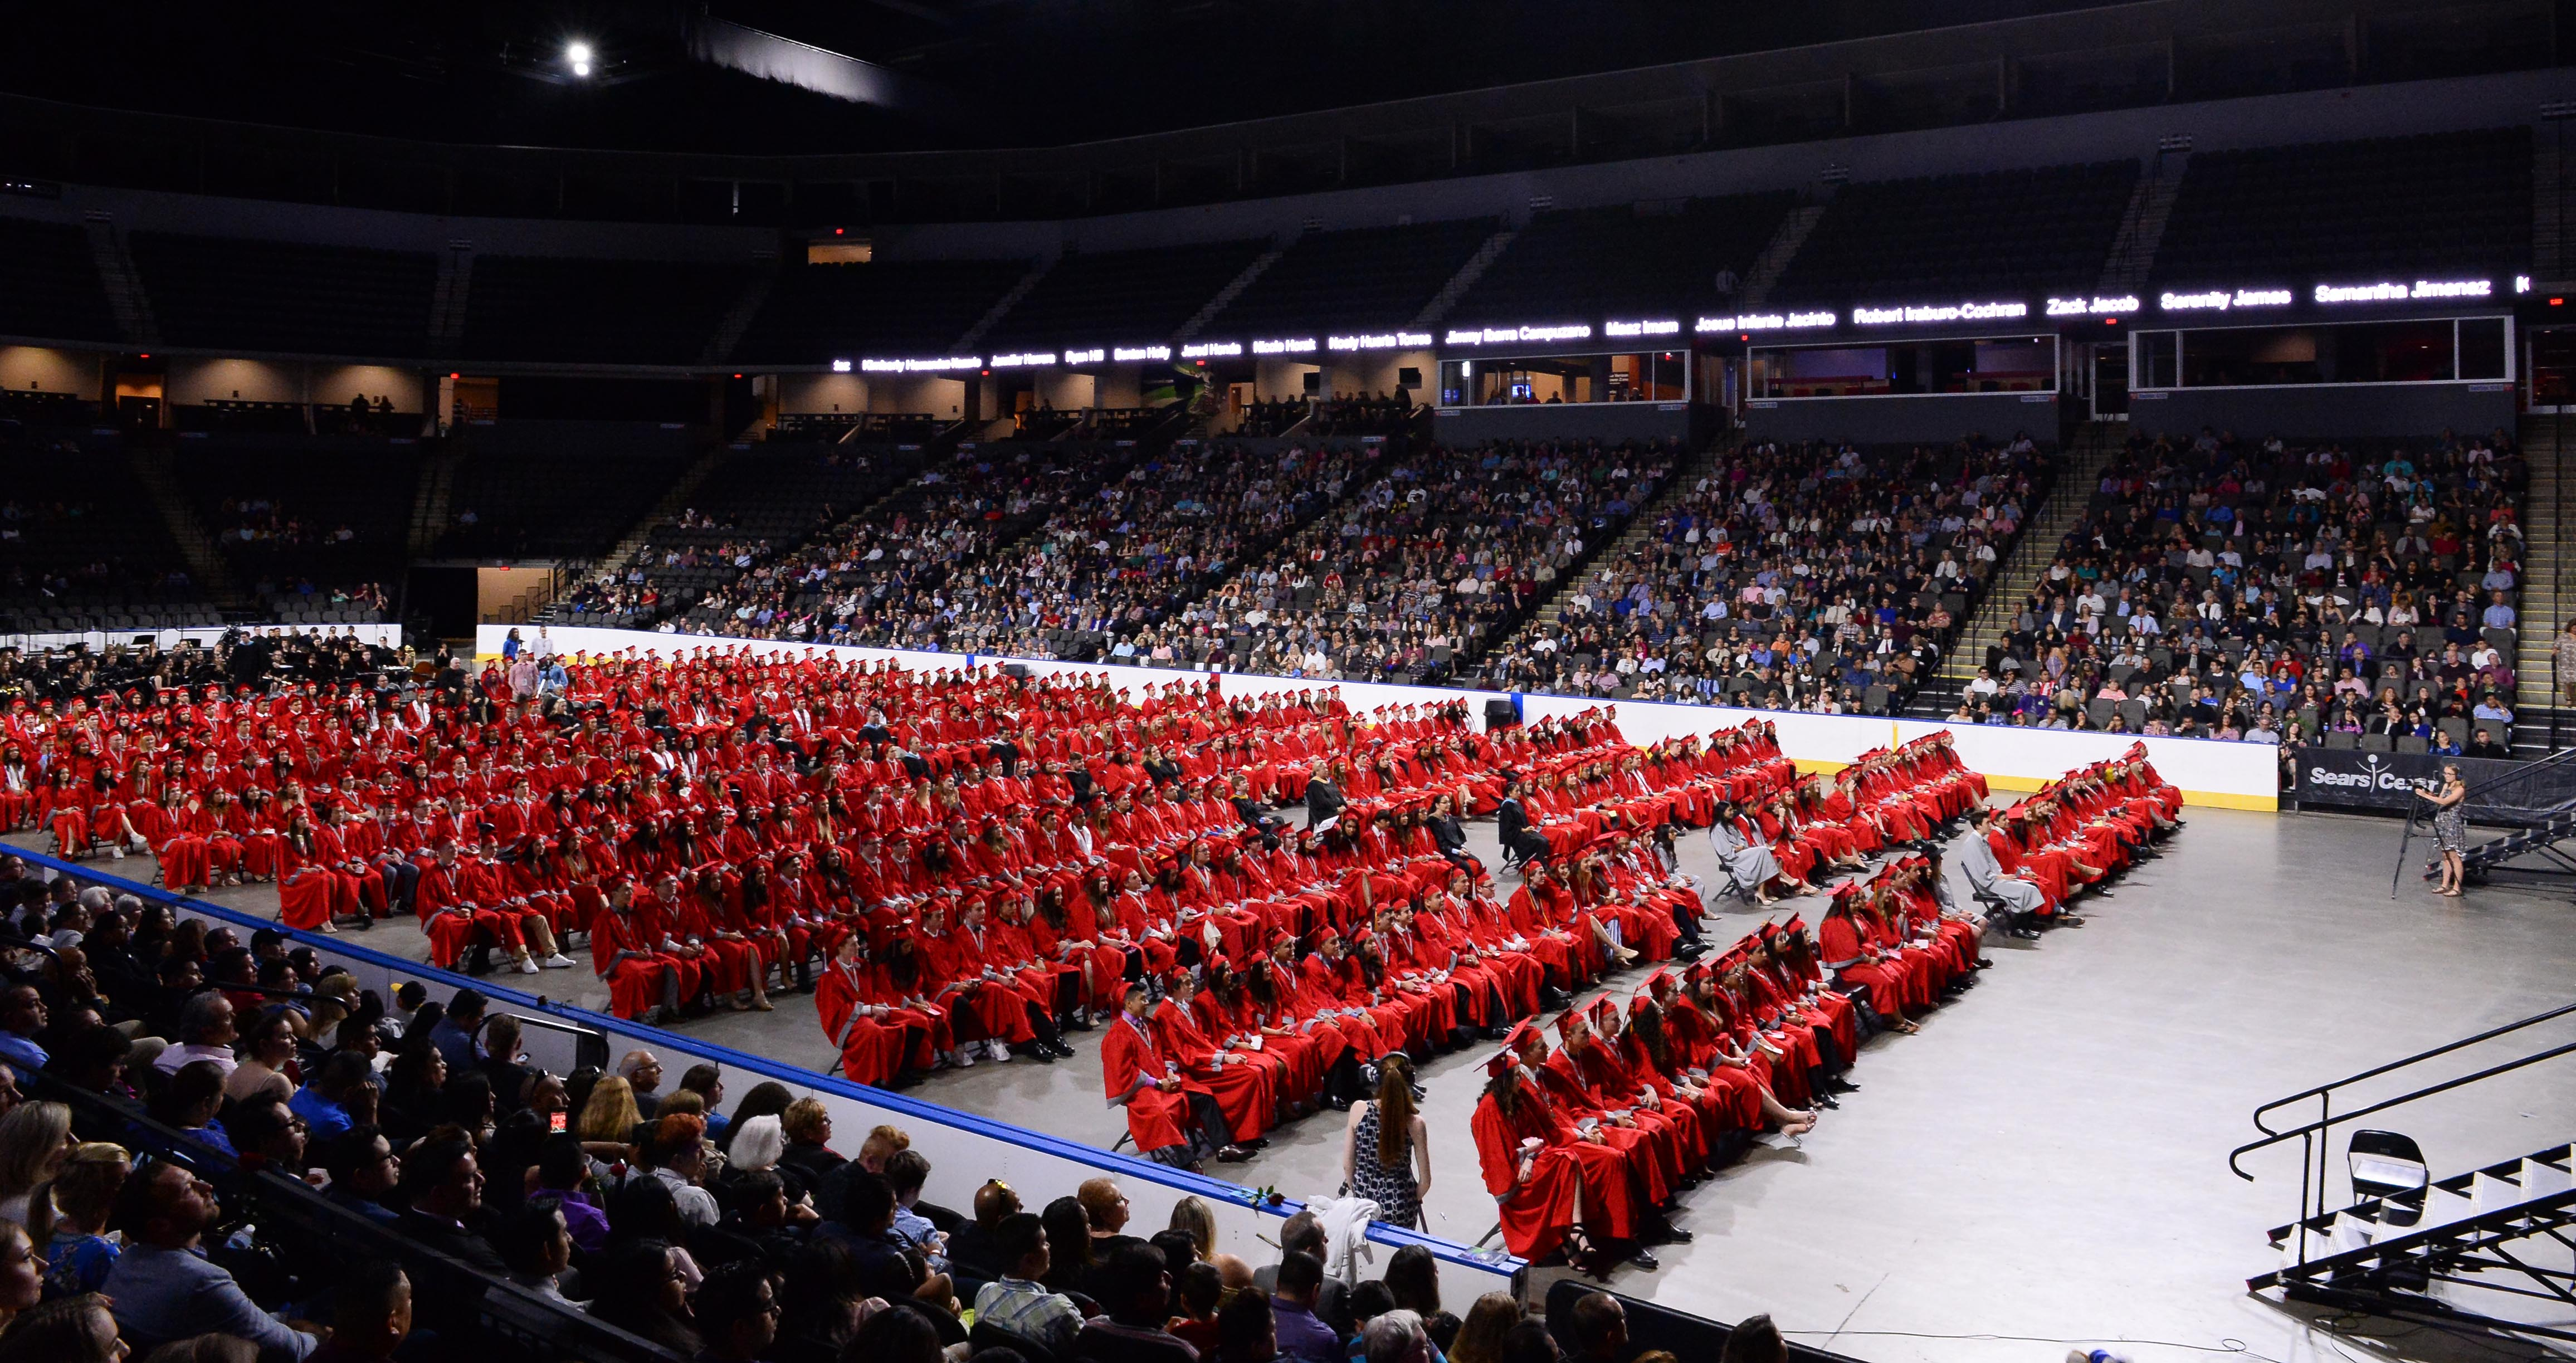 Class of 2018 in red caps and gowns at Graduation